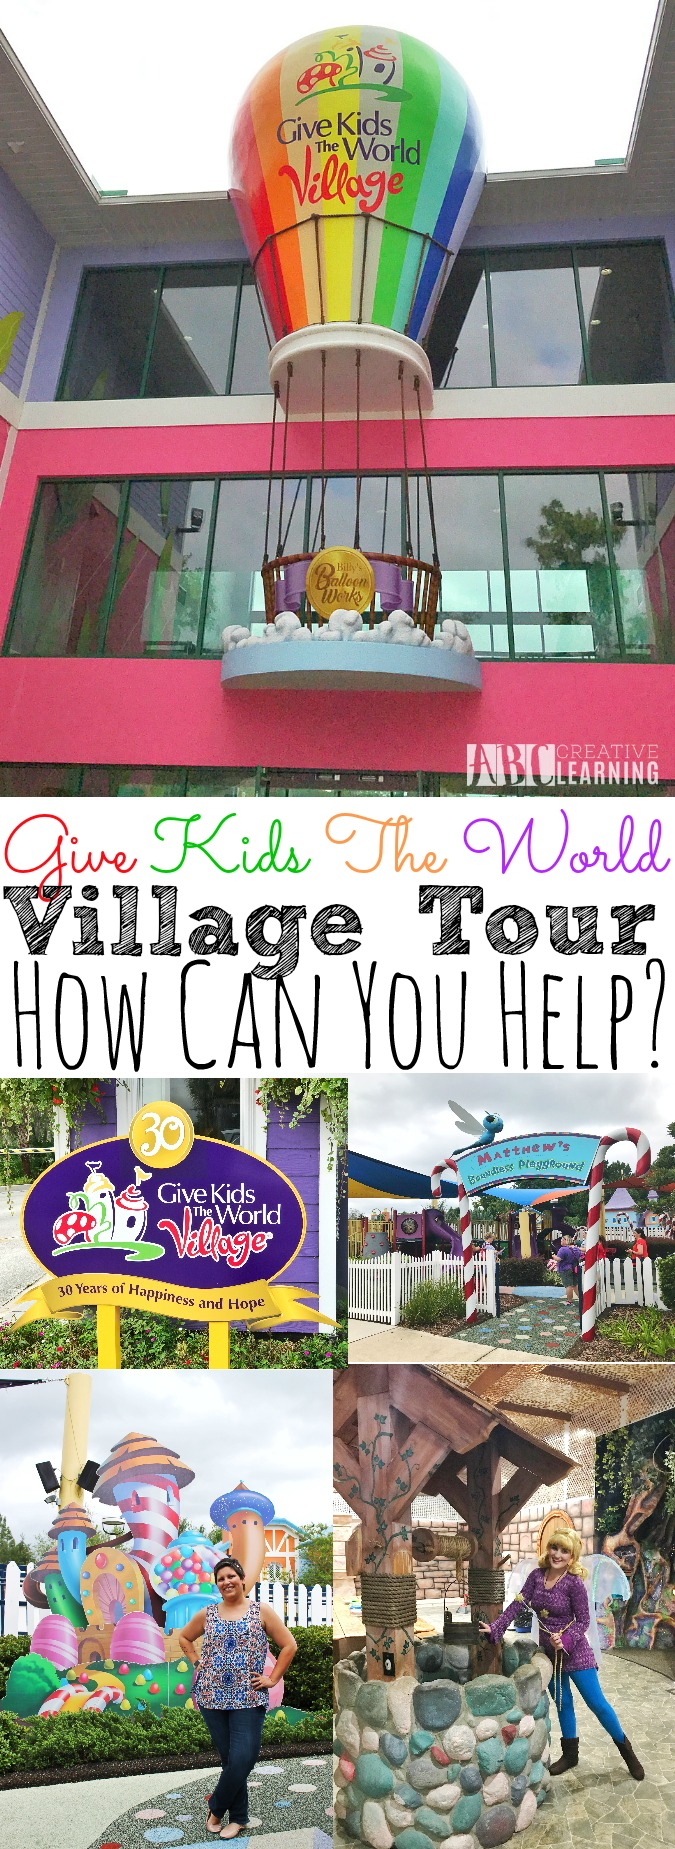 Give Kids The World Village Tour | How Can You Help? - simplytodaylife.com